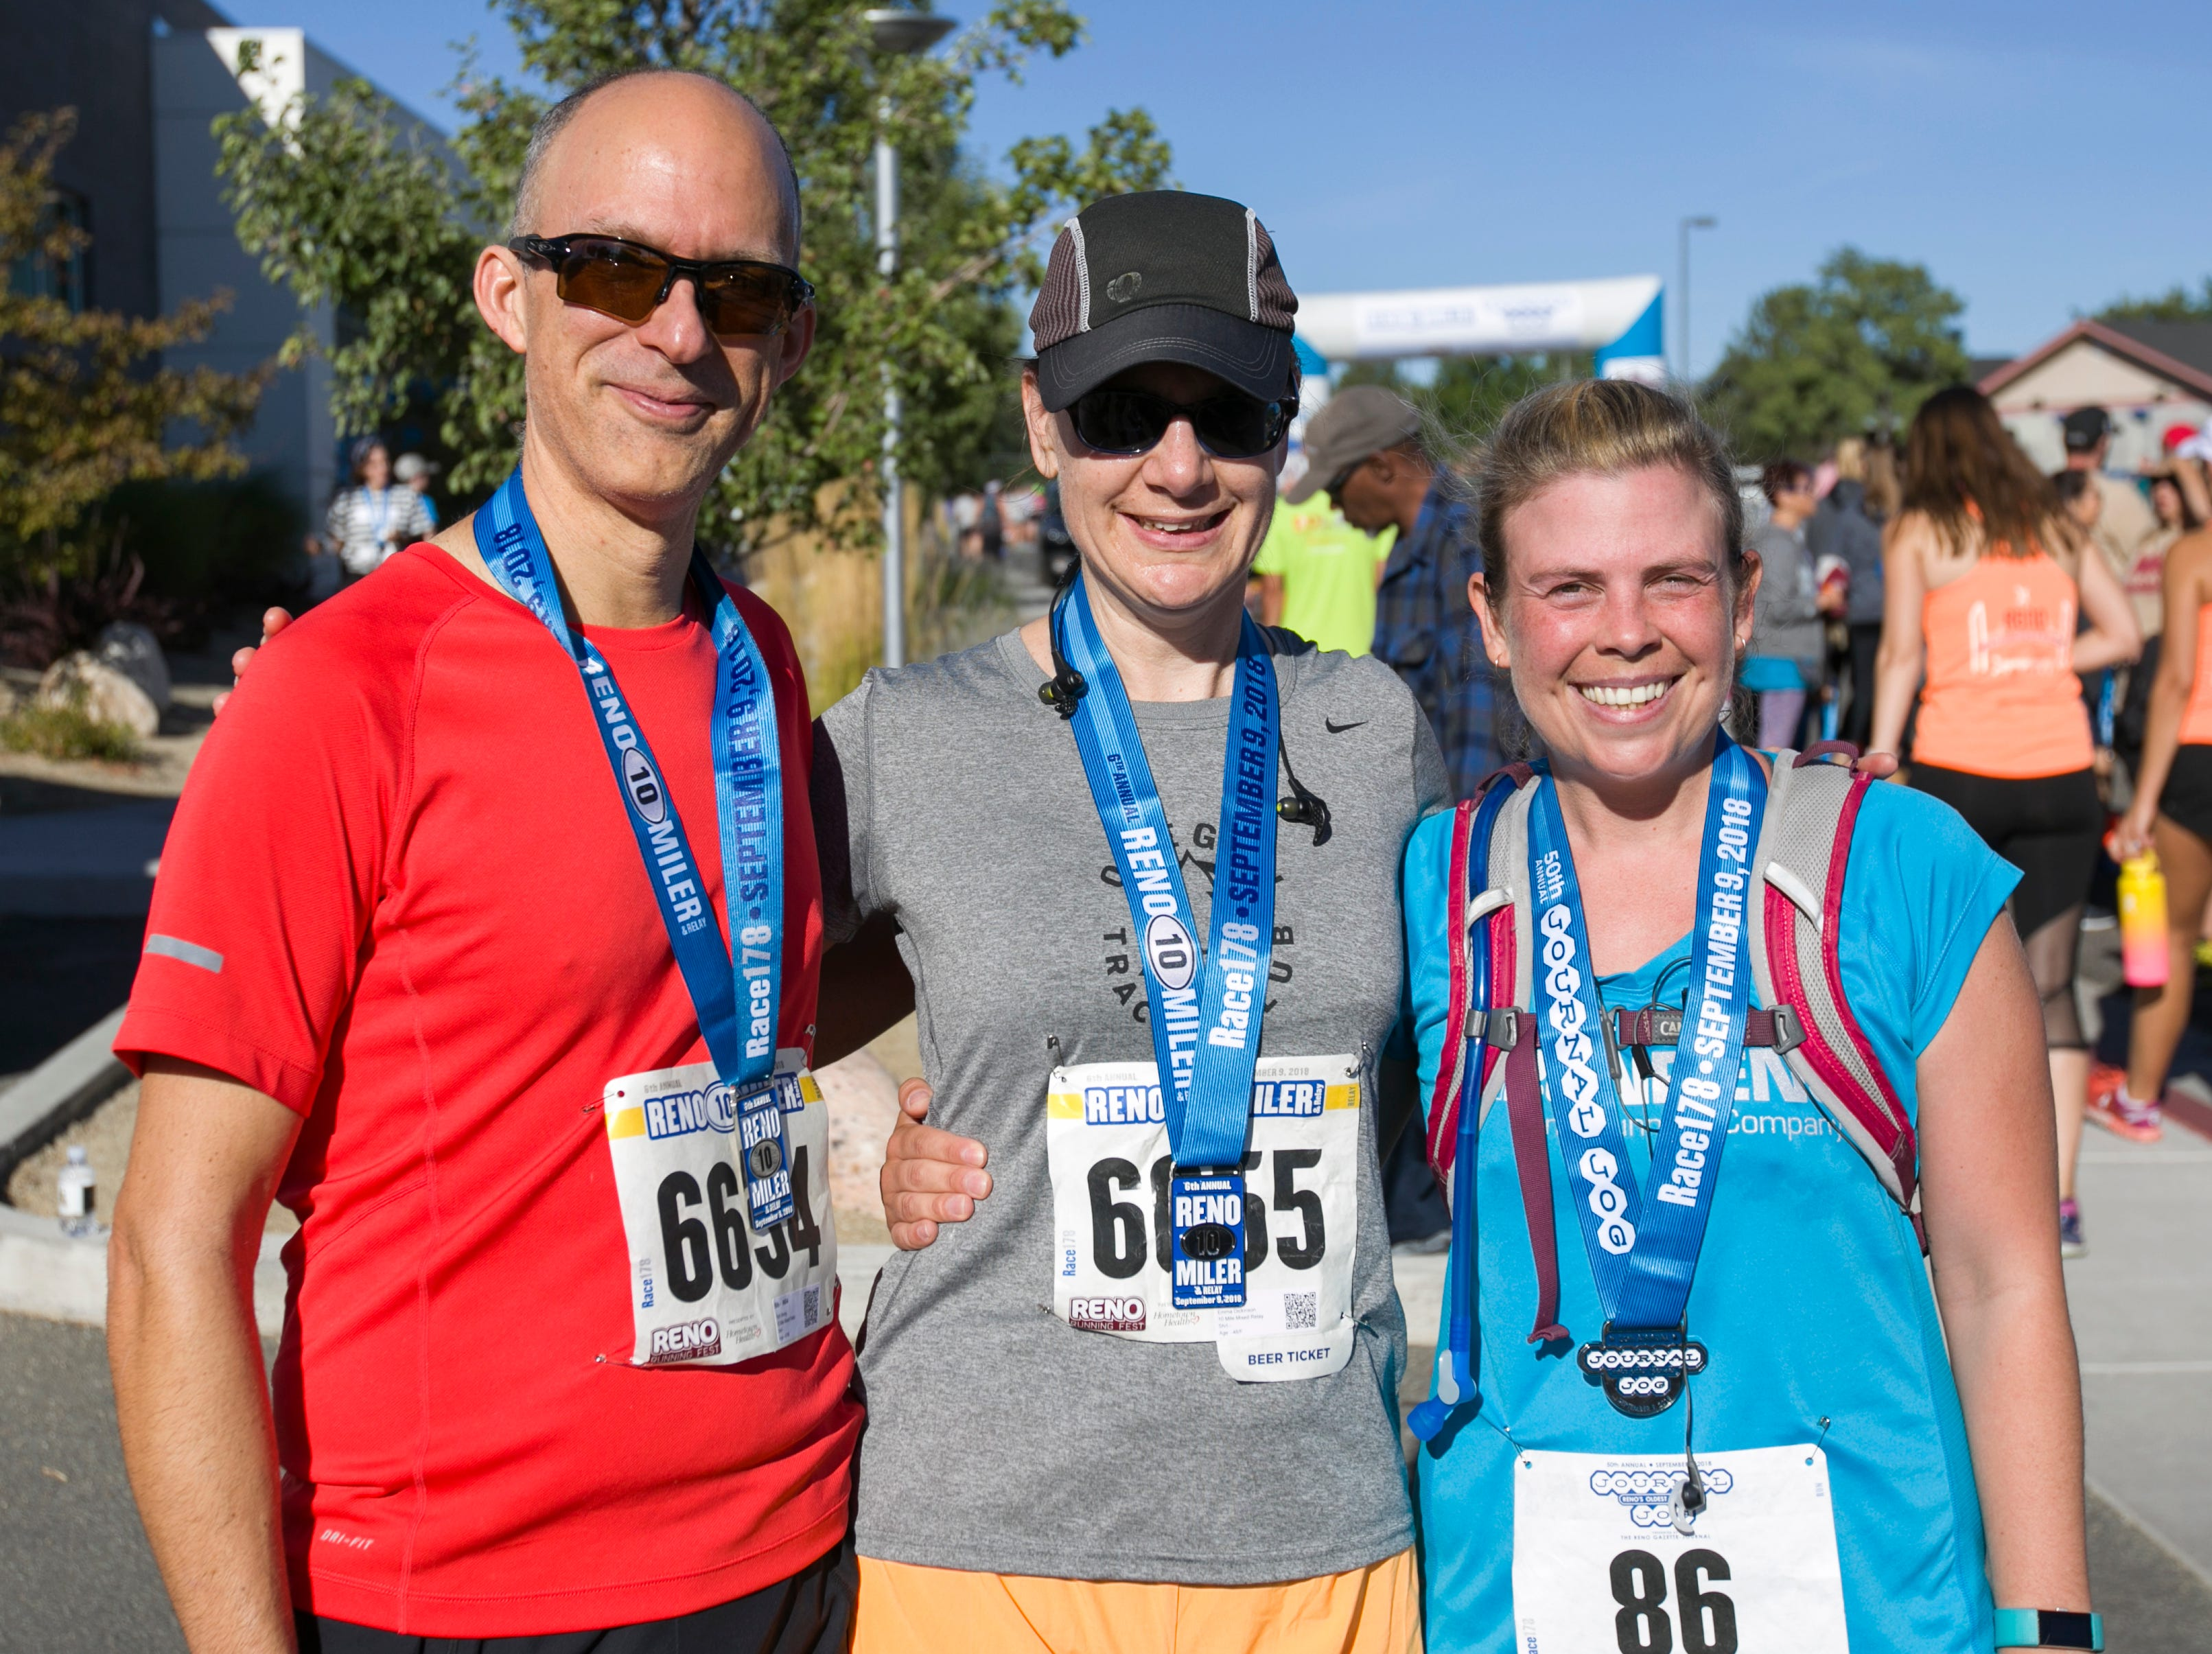 Richard, Emma and Sunet during the 50th Annual Journal Jog in Reno, Nevada on Sunday, September 9, 2018.